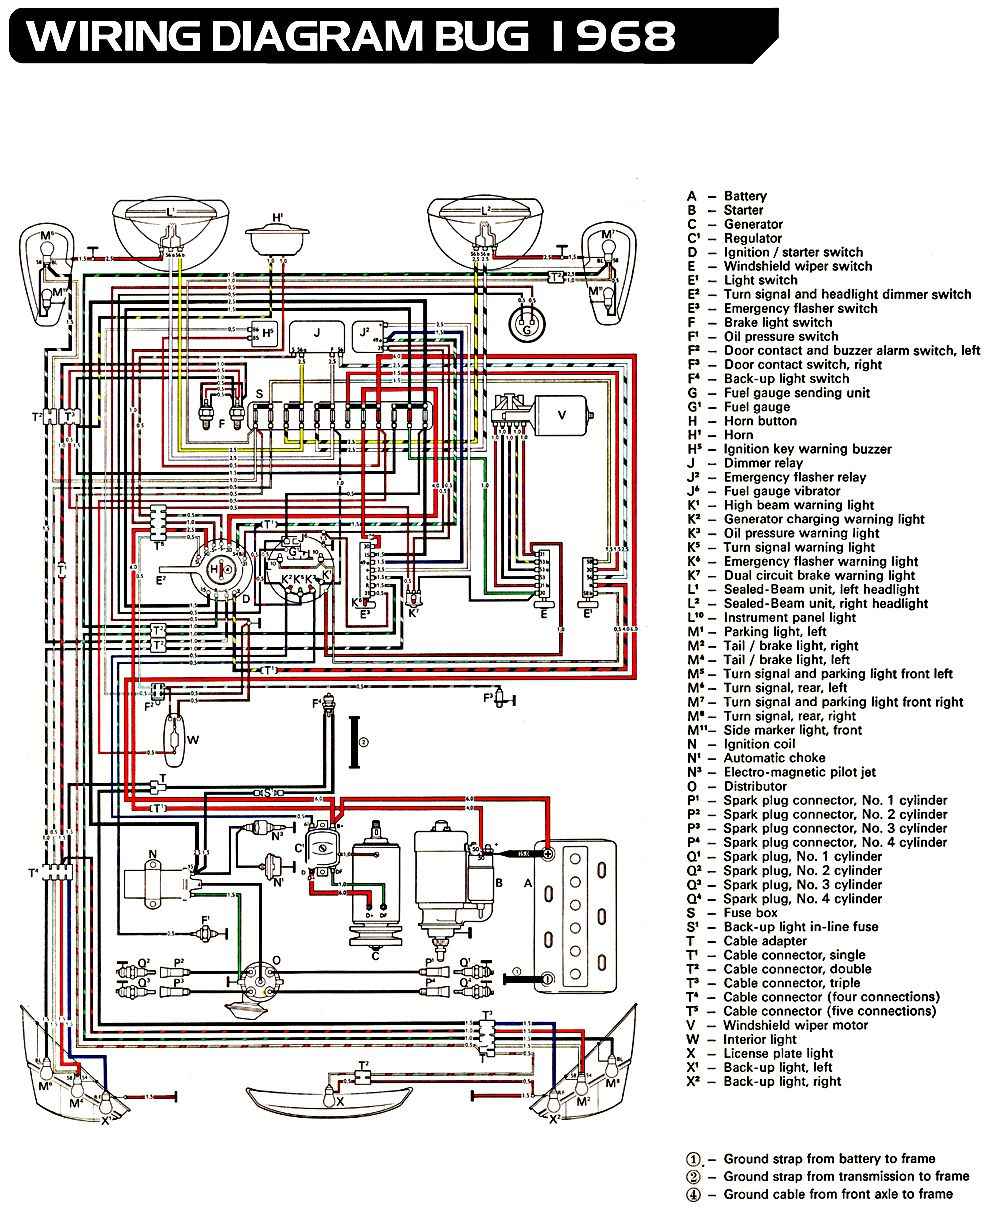 3a1908112d3826270ed5e3be362292bf vw bug ignition wiring diagram 73 vw wiring diagram free vw beetle wiring harness routing at readyjetset.co